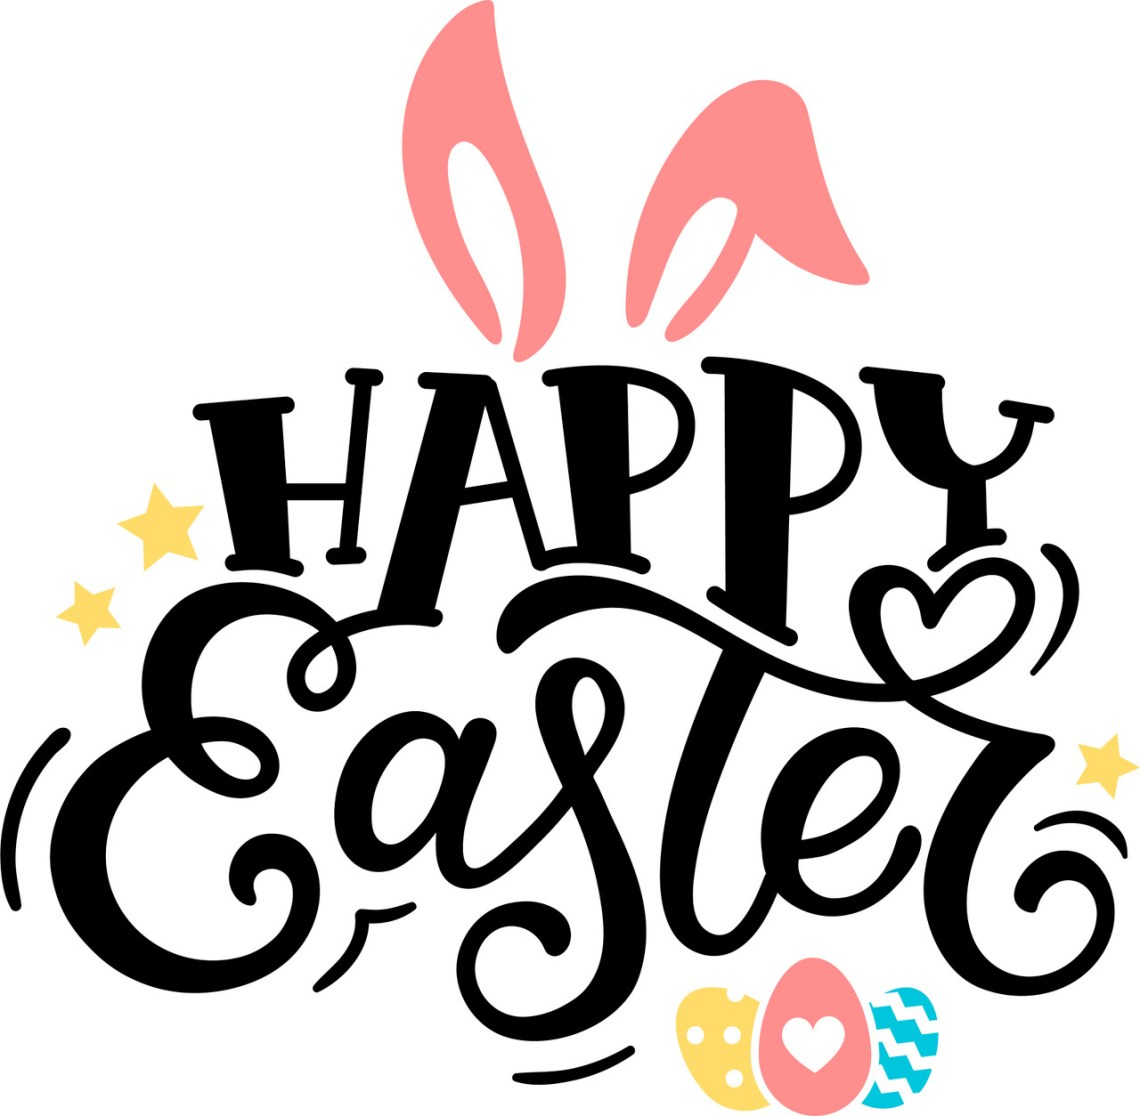 Download Free Happy Easter SVG Cut File | Craftables